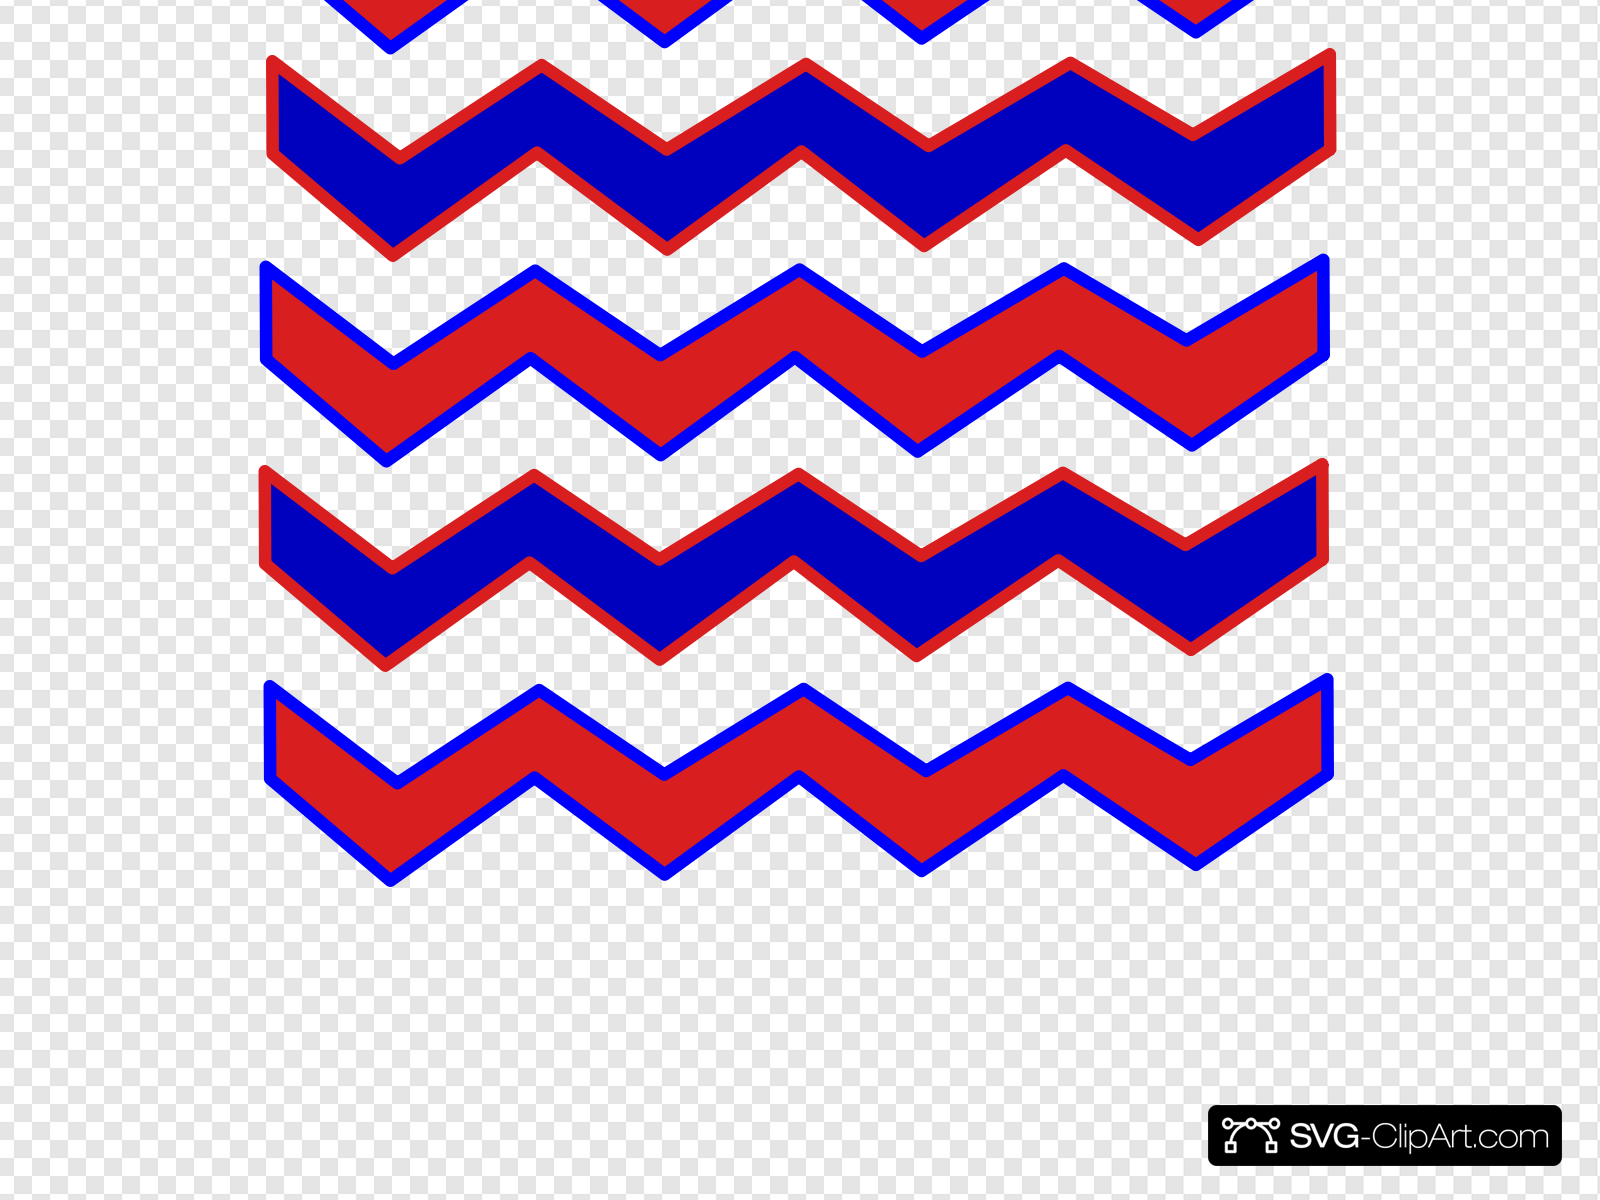 Zig Zag Red And Blue Clip art, Icon and SVG.